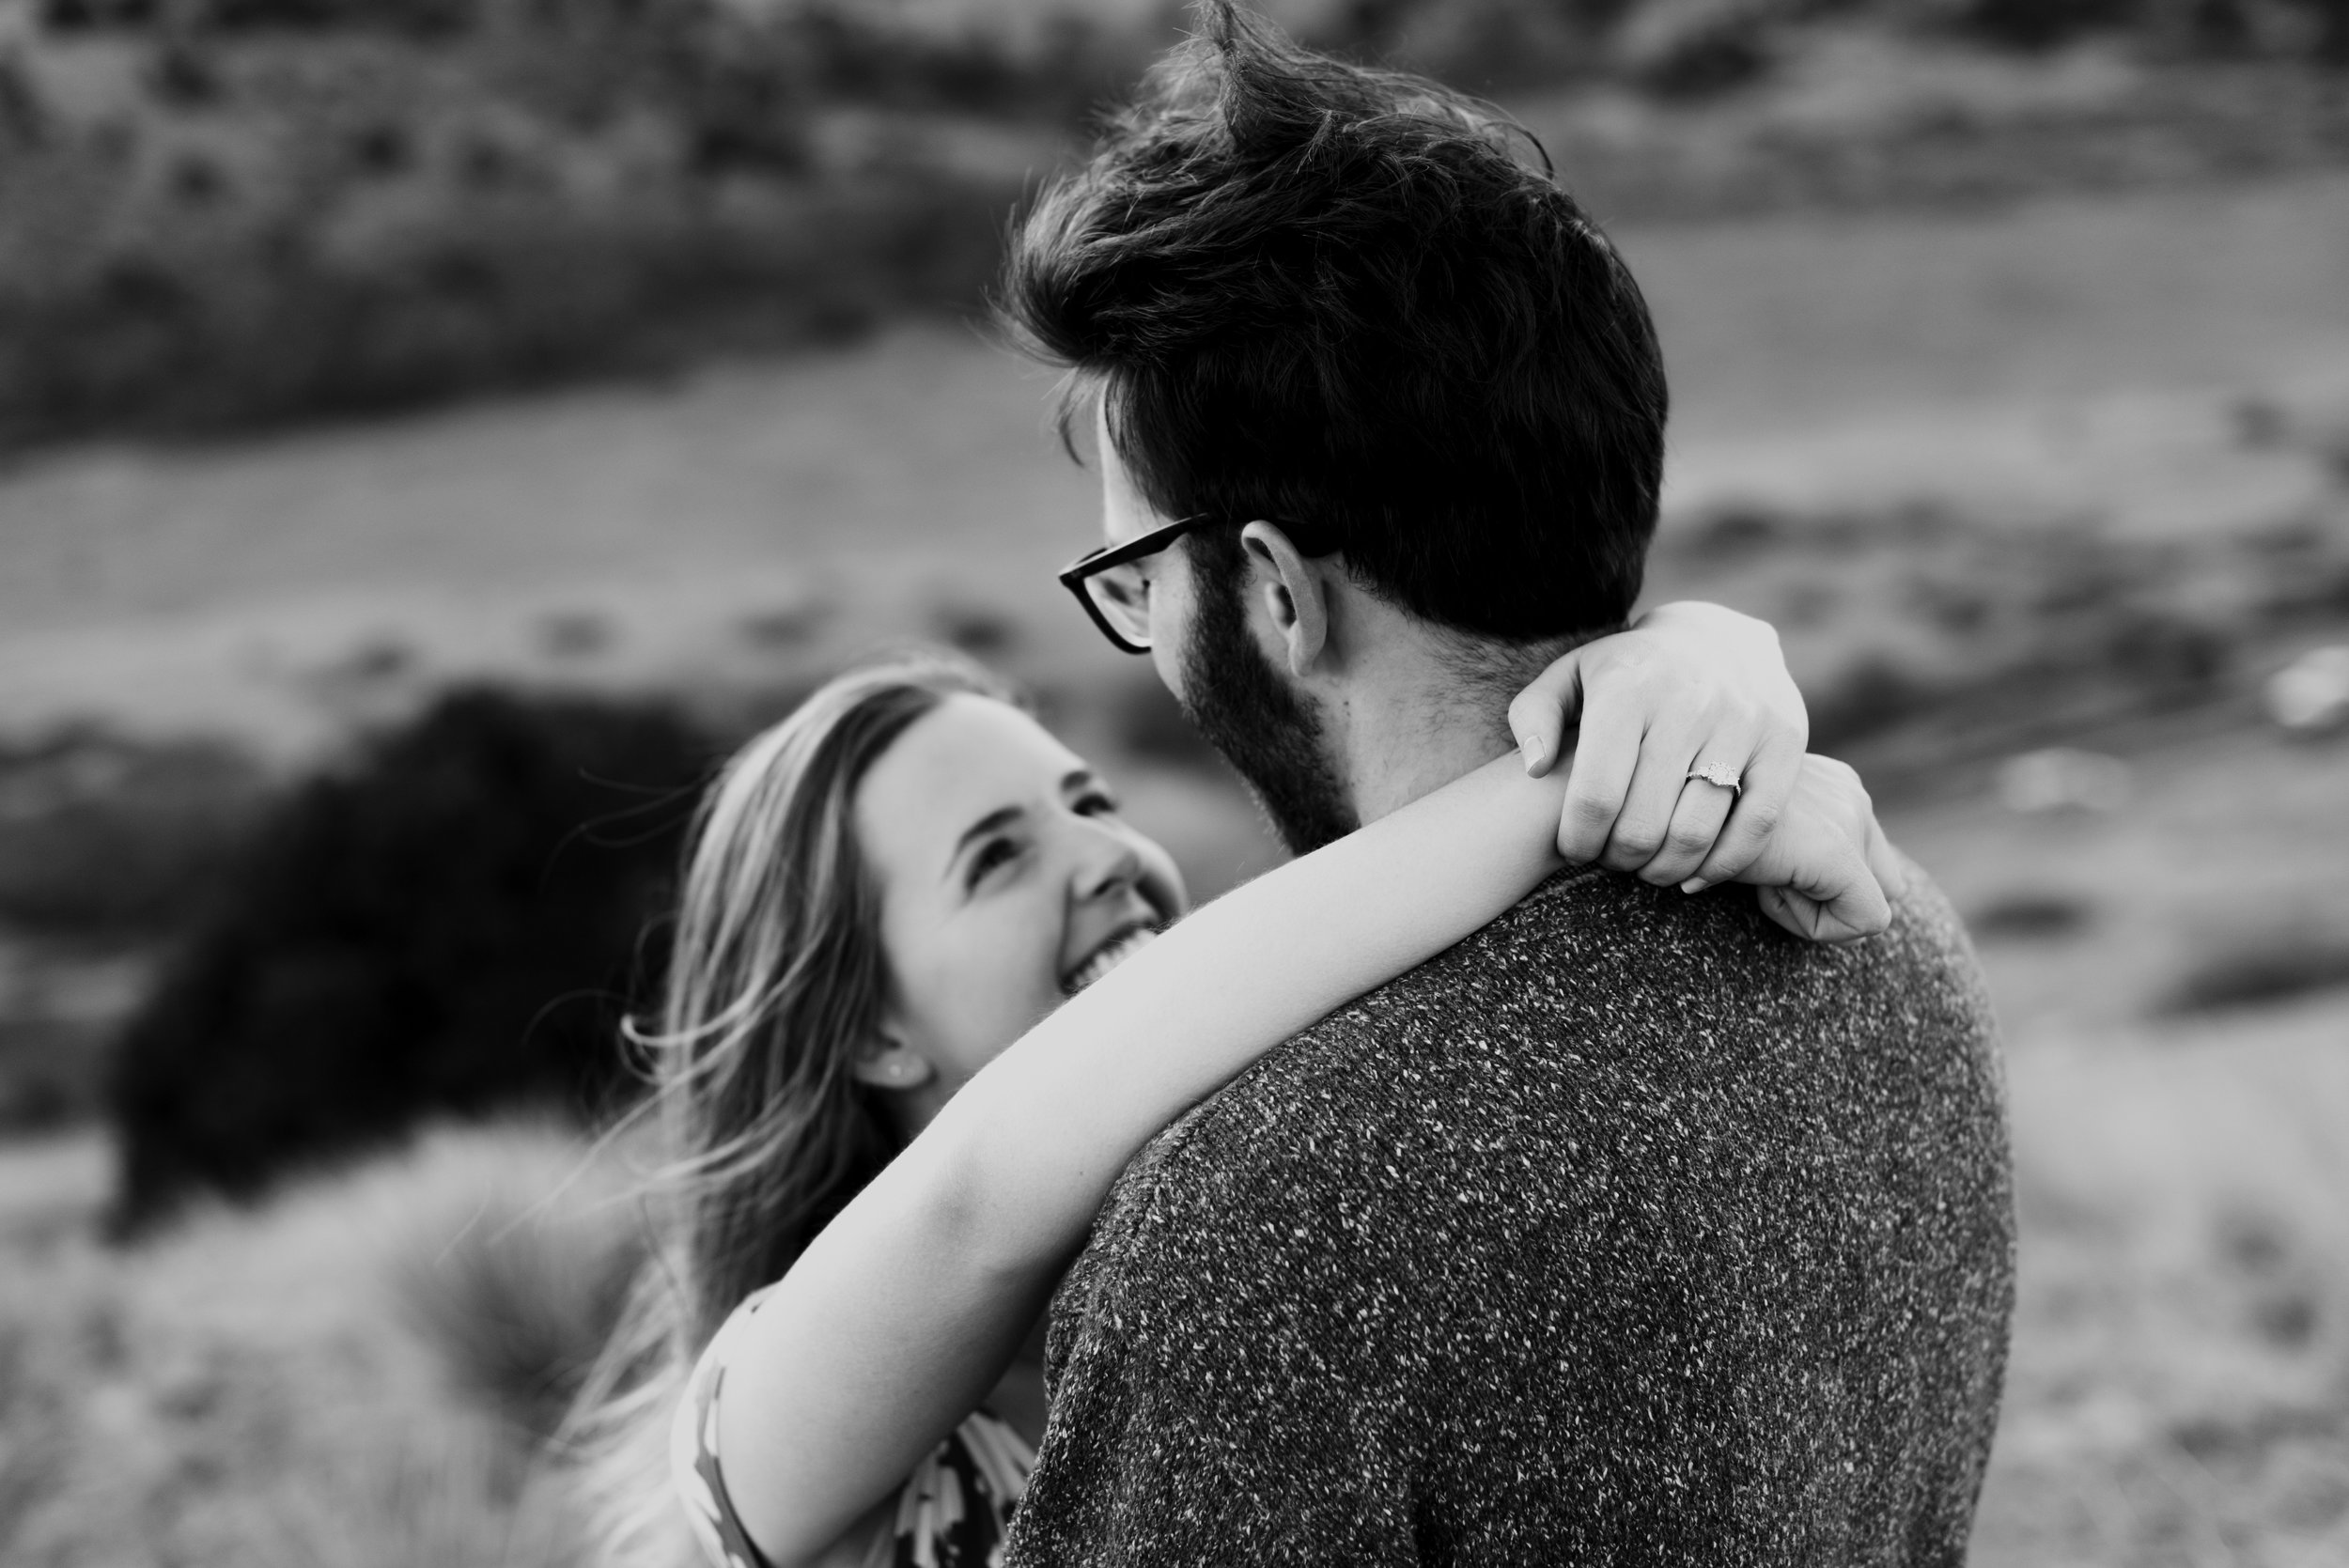 Engagement-session-colorado-engagement-session-Adventurous-Wedding-Photography-Adventurous-Wedding-Photograph-Adventure-Elopement-Photographer-Adventurous-Elopement-Photograph-Adventurous-Elopement-Photographer-Adventurous-Destination-Elopement-Photographer-Destination-Elopement-Photography-Destination-Elopement-Packages-Rocky-Mountain-Elopement-Rocky-Mountain-National-Park-Photographer-RMNP-Wedding-RMNP-Photographer-RMNP-Photography-Colorado-Elopement-Colorado-Elopement-Photographer-Colorado-Elopement-Photography-Iceland-Elopement-Photographer-Iceland-Elopement-Packages-Hiking-Wedding-Hiking-Elopement-Photographer-Mountain-Wedding-Photographer-Mountain-Wedding-Photography-Colorado-Mountain-Wedding-Colorado-Mountain-Elopement-Adventure-wedding-adventure-elopement-Colorado-springs-garden-of-the-gods-engagement-garden-of-the-gods-couples-adventure-session-Teresa-Woodhull-photography-Teresa-Woodhull-photographer-Intimate-wedding-photographer-Intimate-wedding-photography-elopement-photographer-traveling-wedding-photographer-traveling-elopement-photographer-Adventure-elopement-photographer-Adventure-wedding-photographer-Destination-wedding-Destination-elopement-Destination-wedding-photography-Destination-wedding-photographer-Teresa-Woodhull-Intimate-Wedding-Photography-Teresa-Woodhull-Intimate-Wedding-Photographer-Teresa-Woodhull-Elopement-Photography-Teresa-Woodhull-Elopement-Photographer-Elopement-Photography-Intimate-Elopement-Photographer-Intimate-Elopement-Photography-Elopement-Wedding-Weddings-Elope-Elopements-Intimate-Weddings-Adventure-Weddings-Adventure-Wedding-Photograph-Adventure-Wedding-Photograph-rachel-looking-up-at-ted-hiking-couples-portrait-session